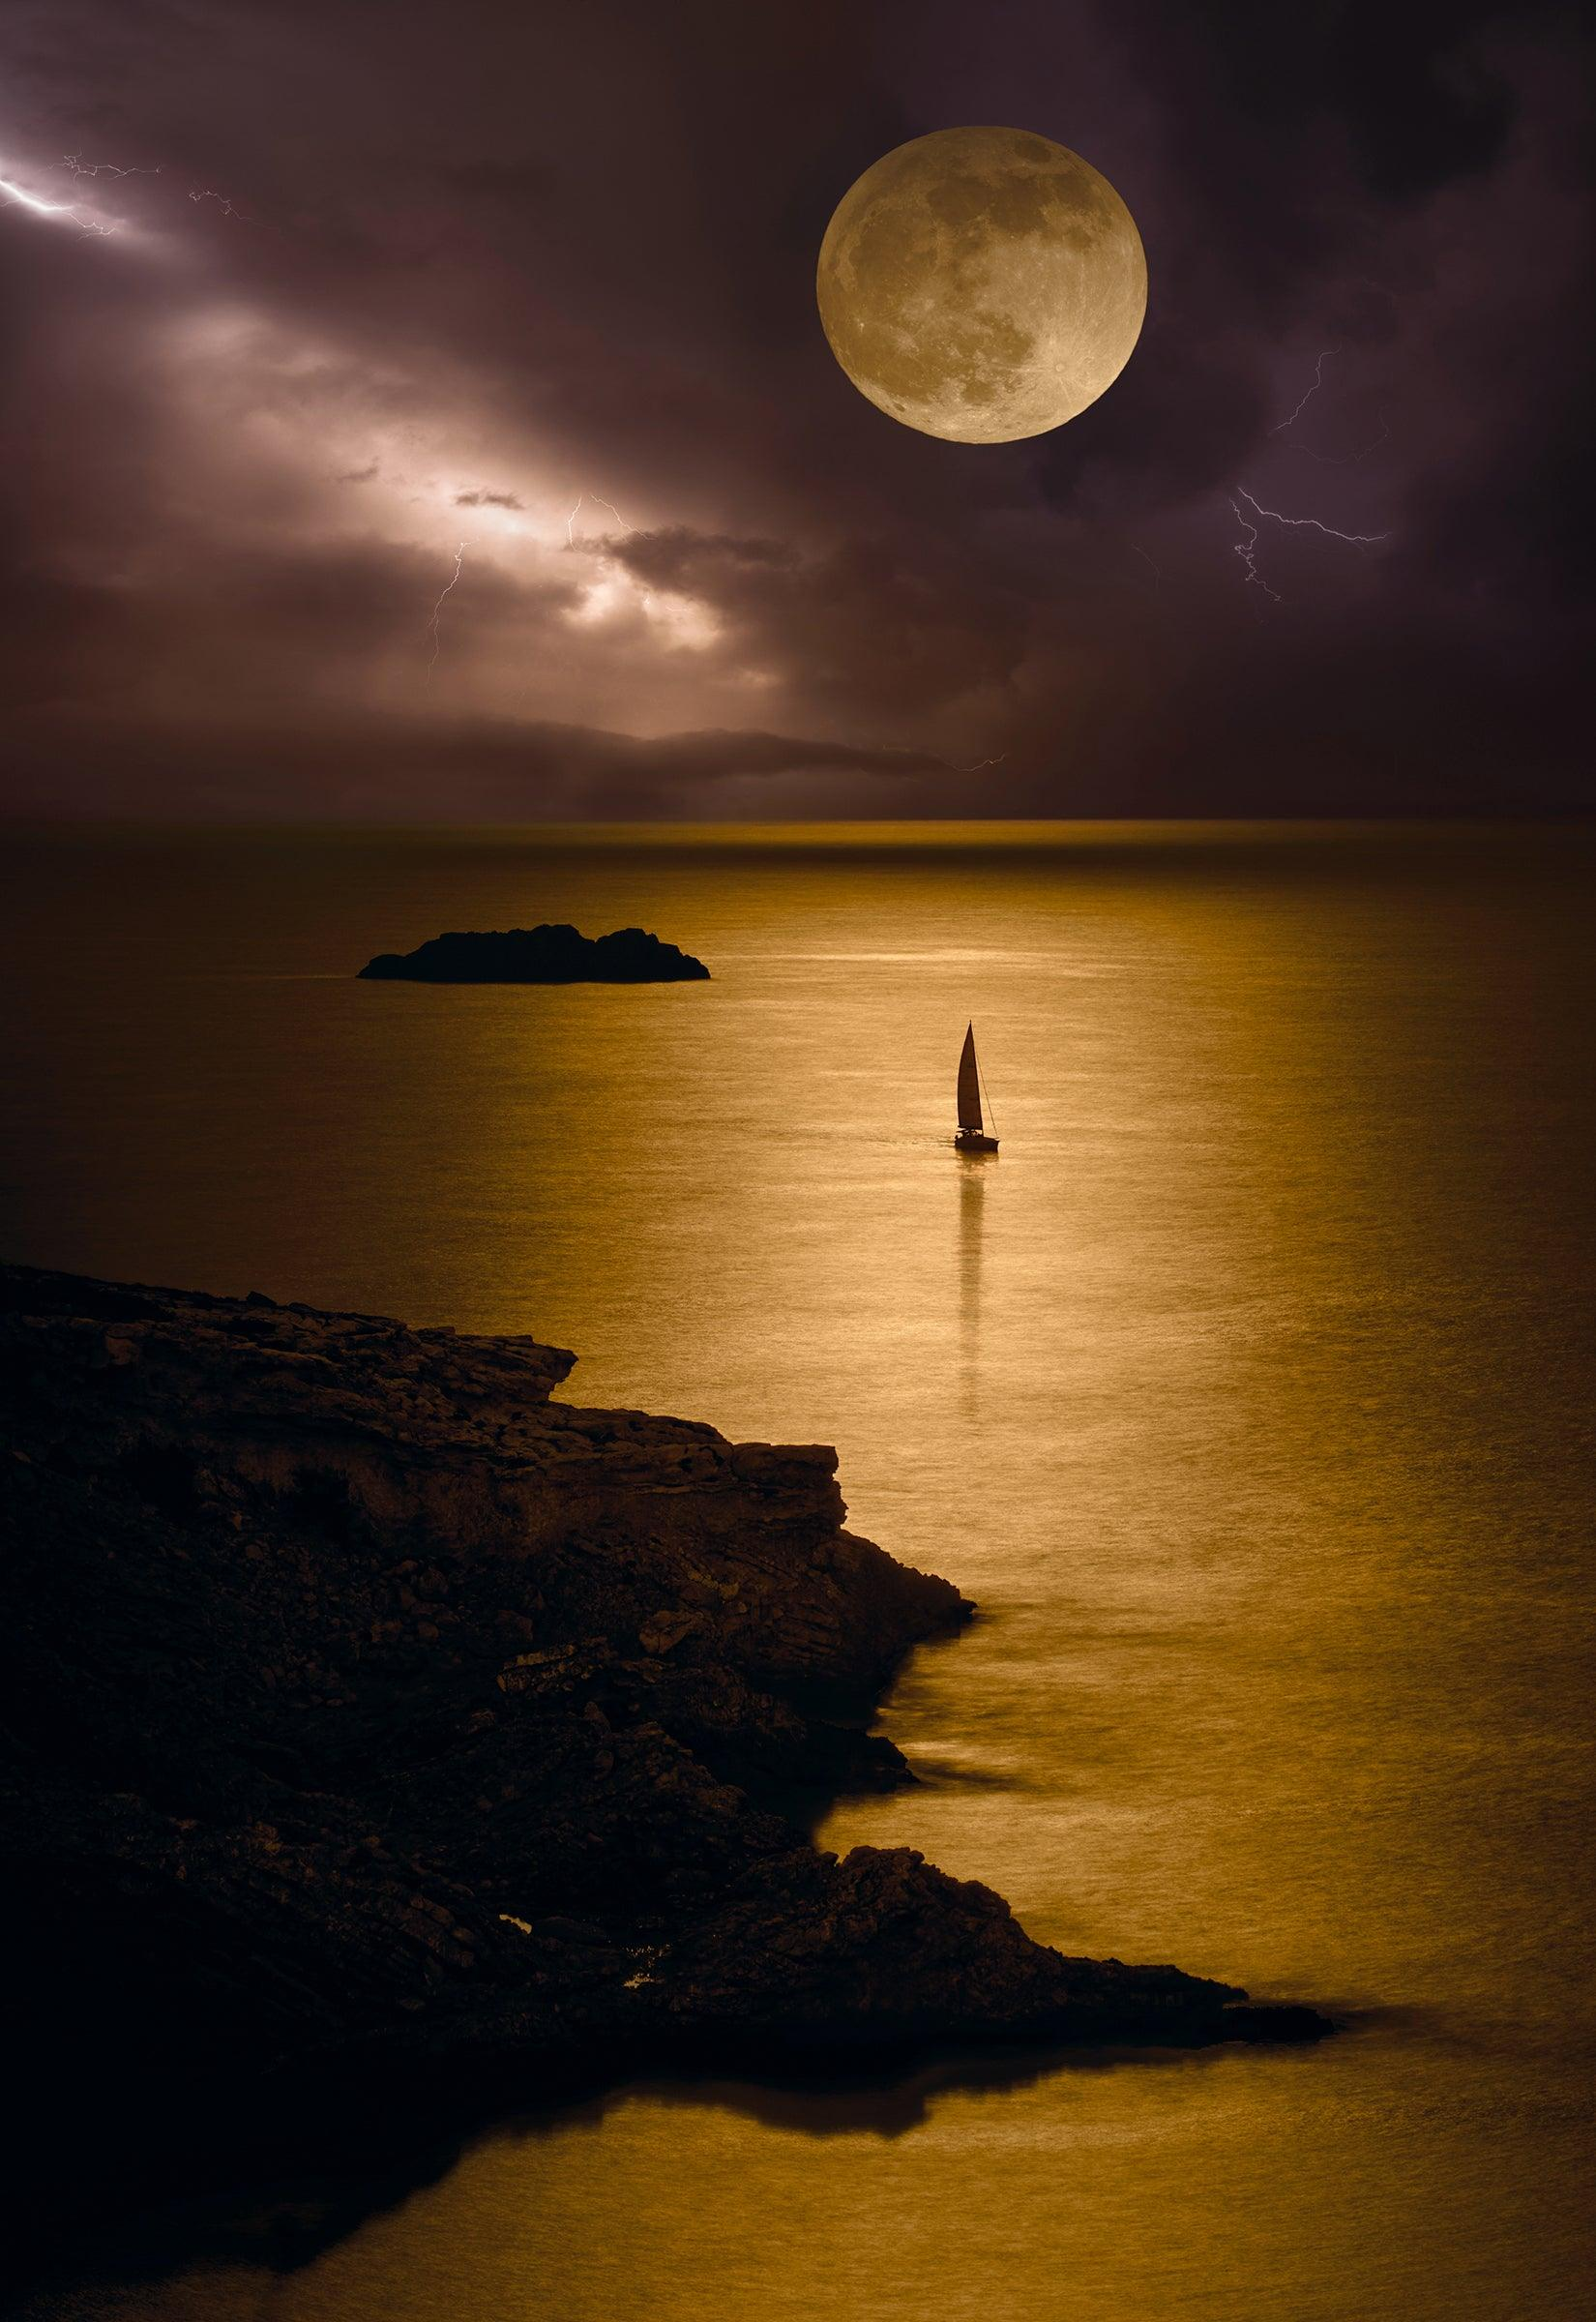 Sail boat off the rocky coast of Ibiza, Spain under a full moon and lightning filled sky at night